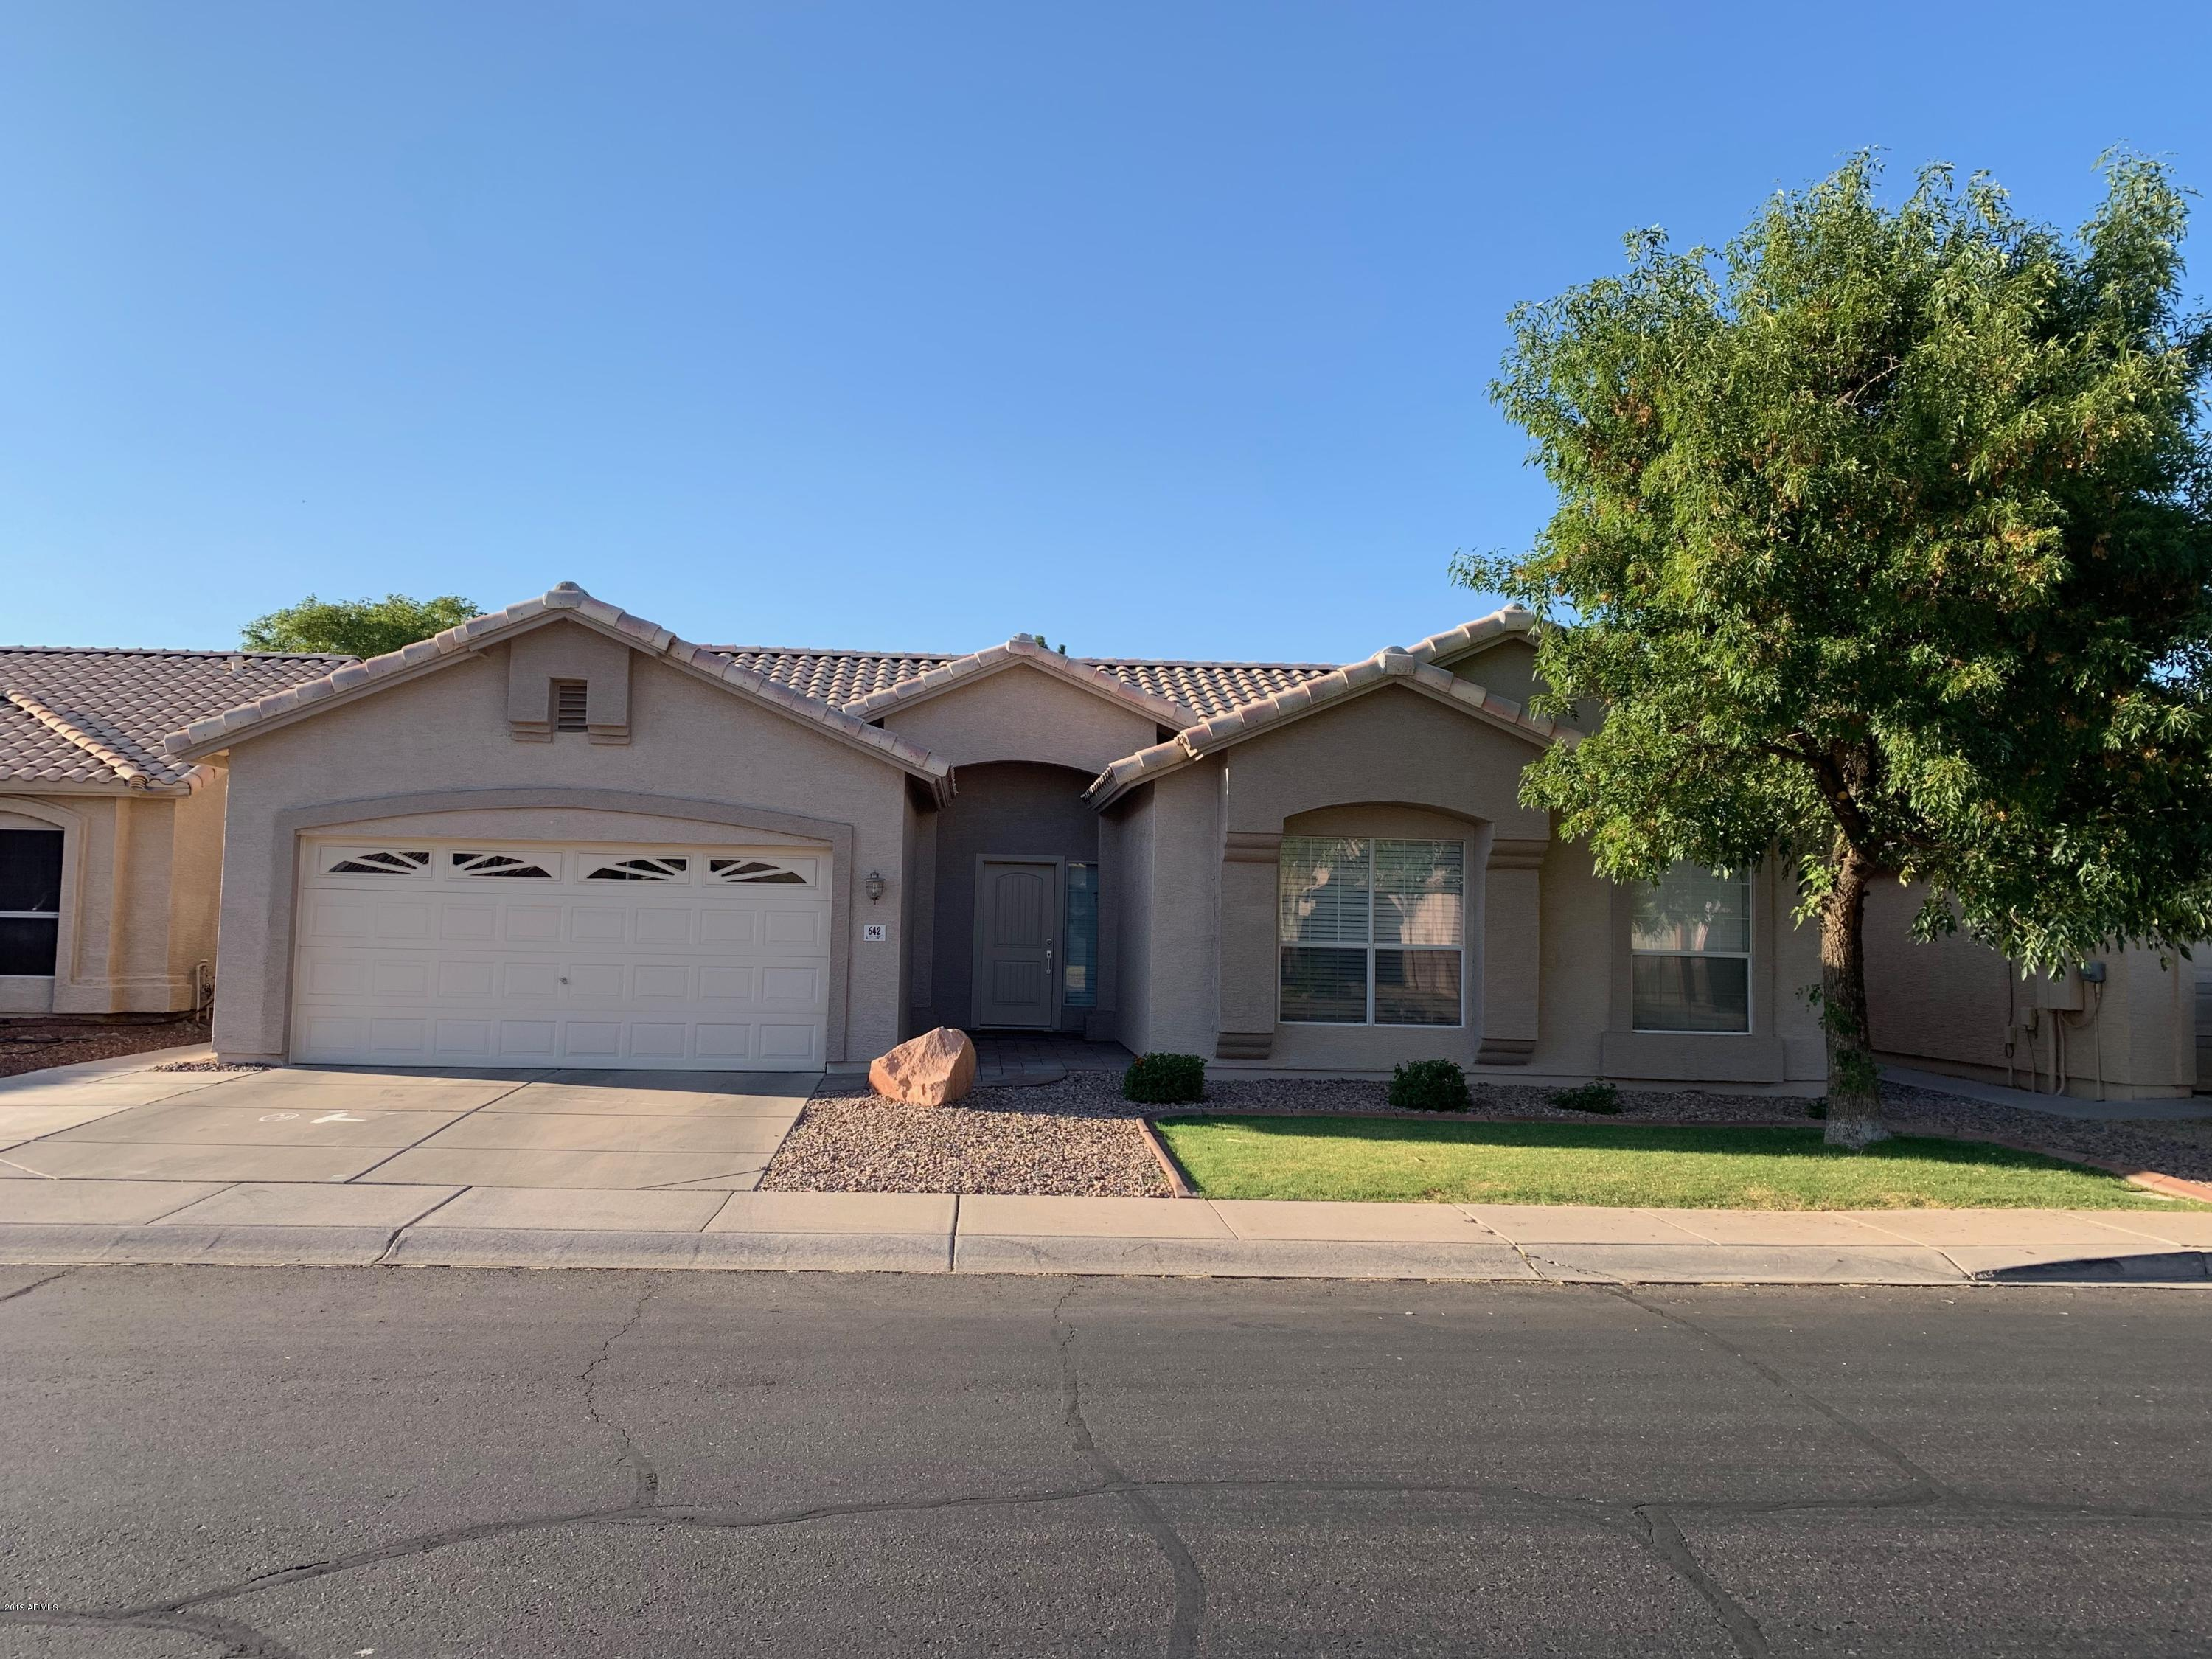 Photo of 642 E IRONWOOD Drive, Chandler, AZ 85225